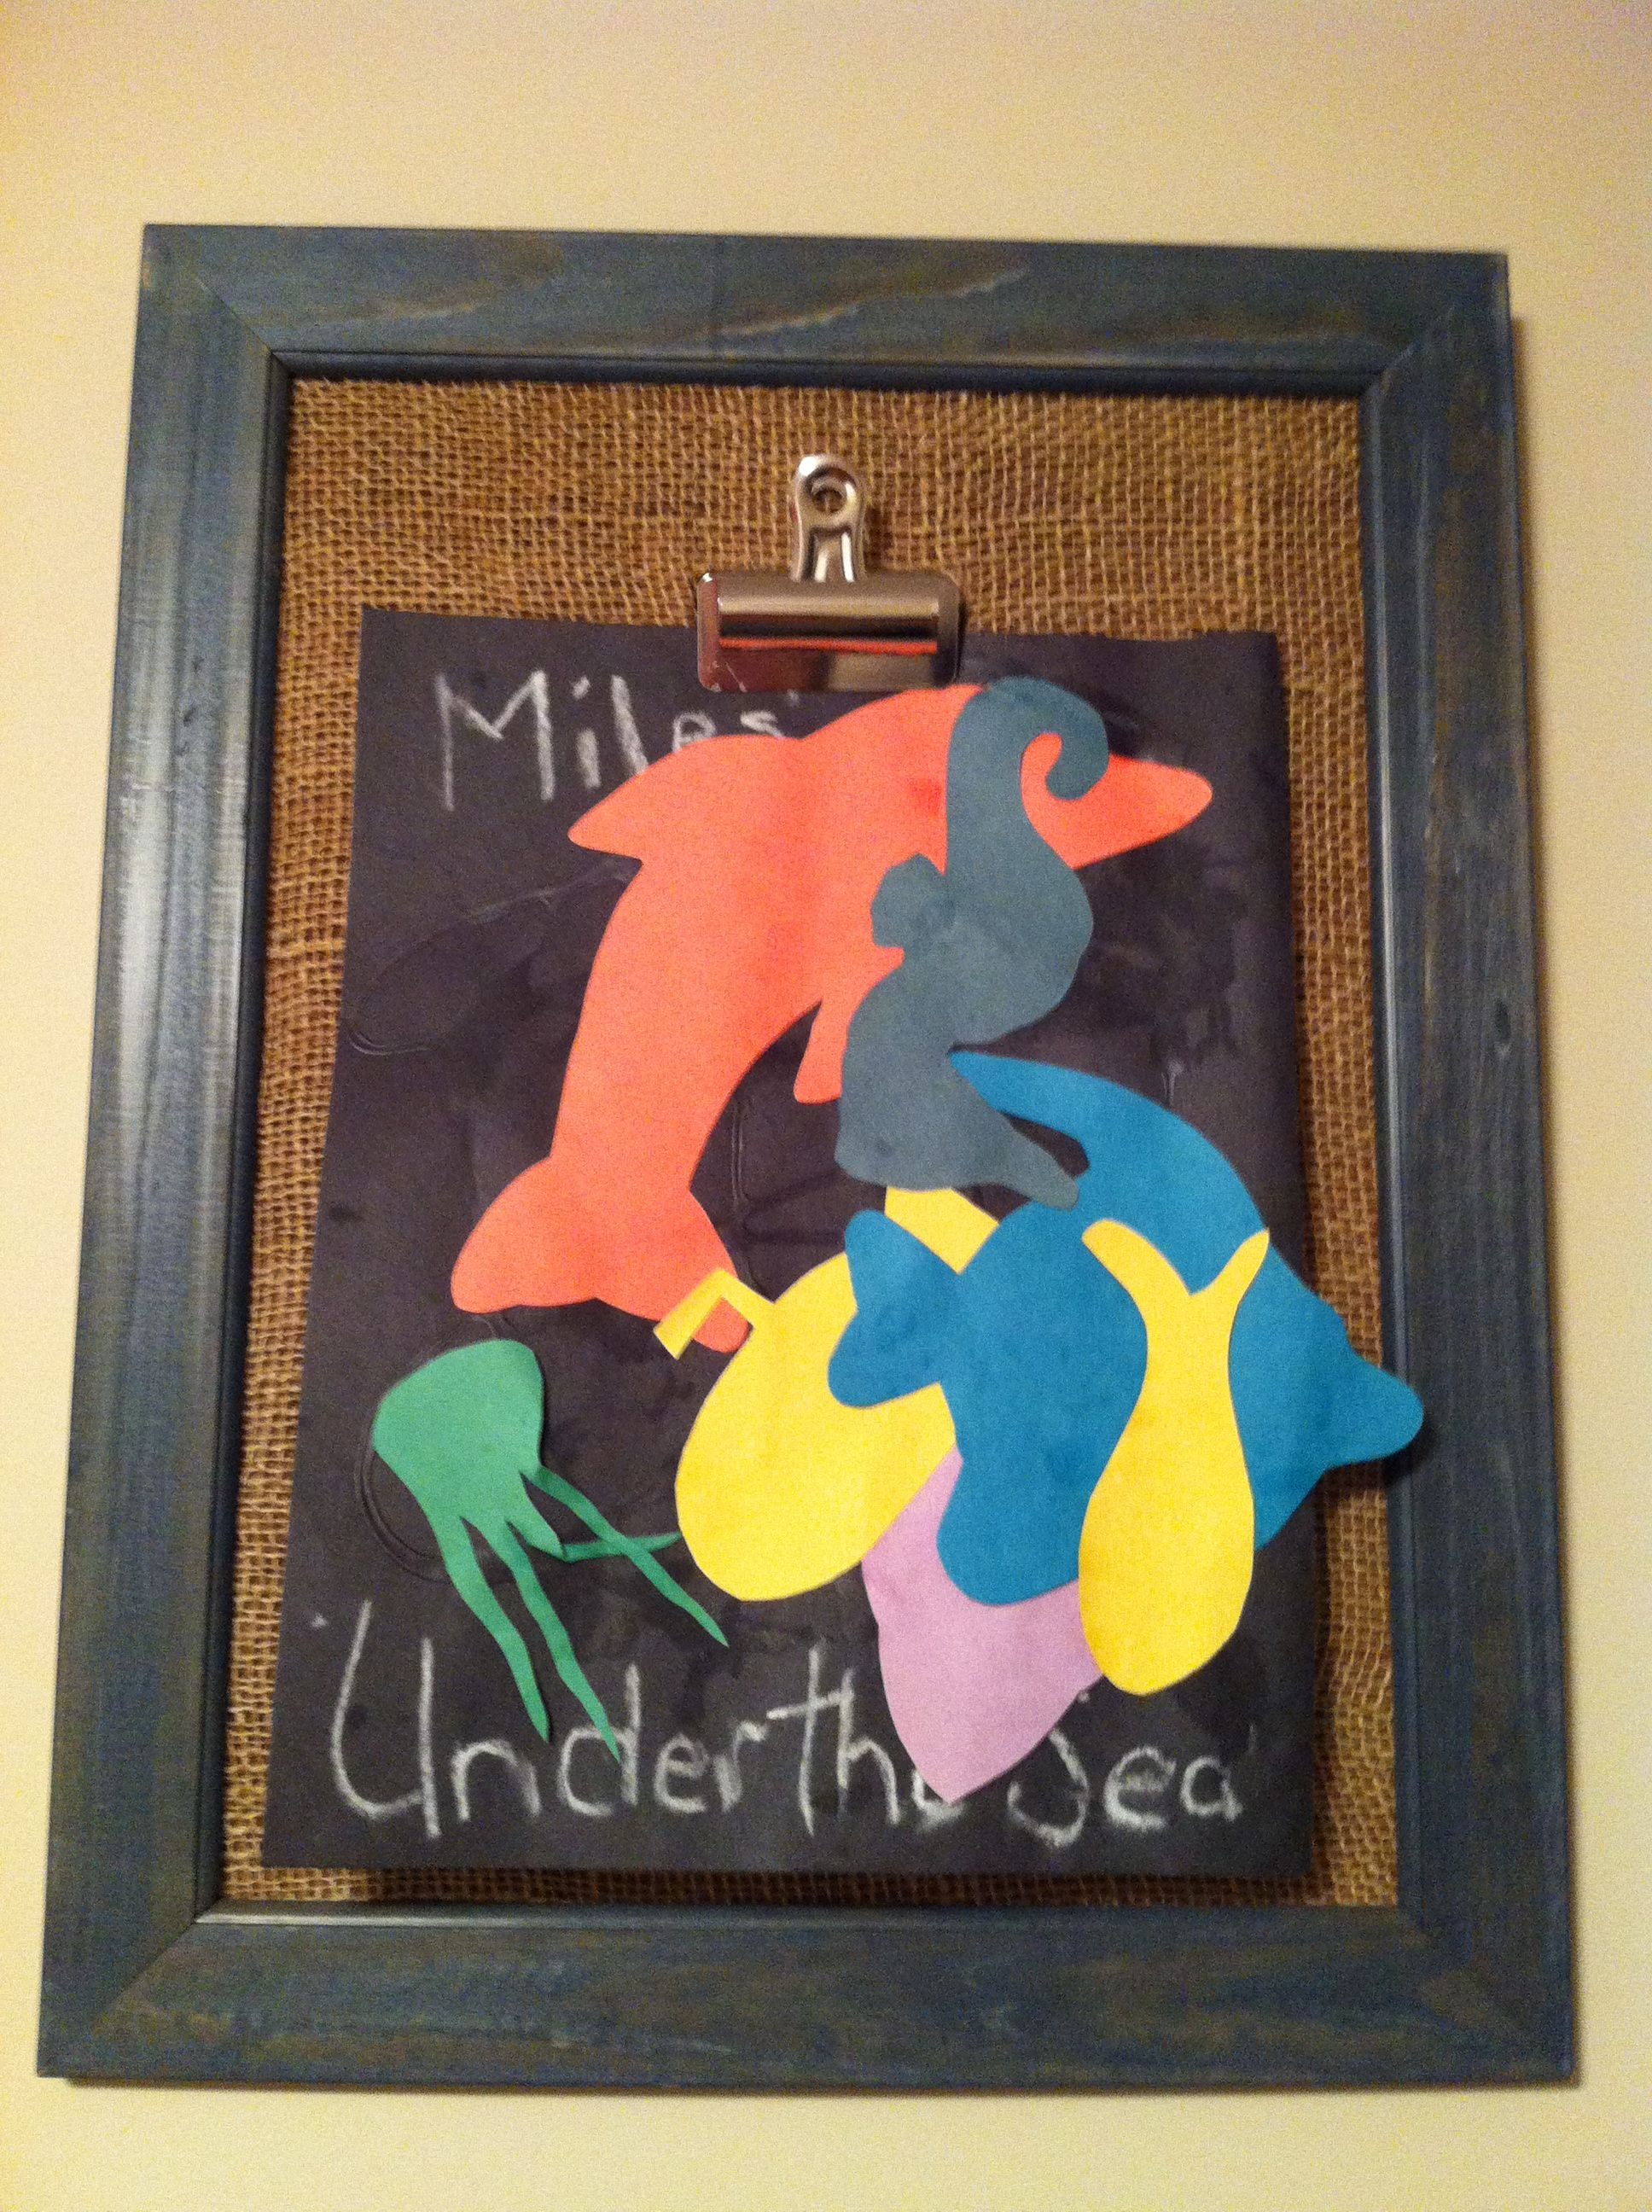 Children's art board - old frame, remove glass, add burlap backing and large metal binder clip.